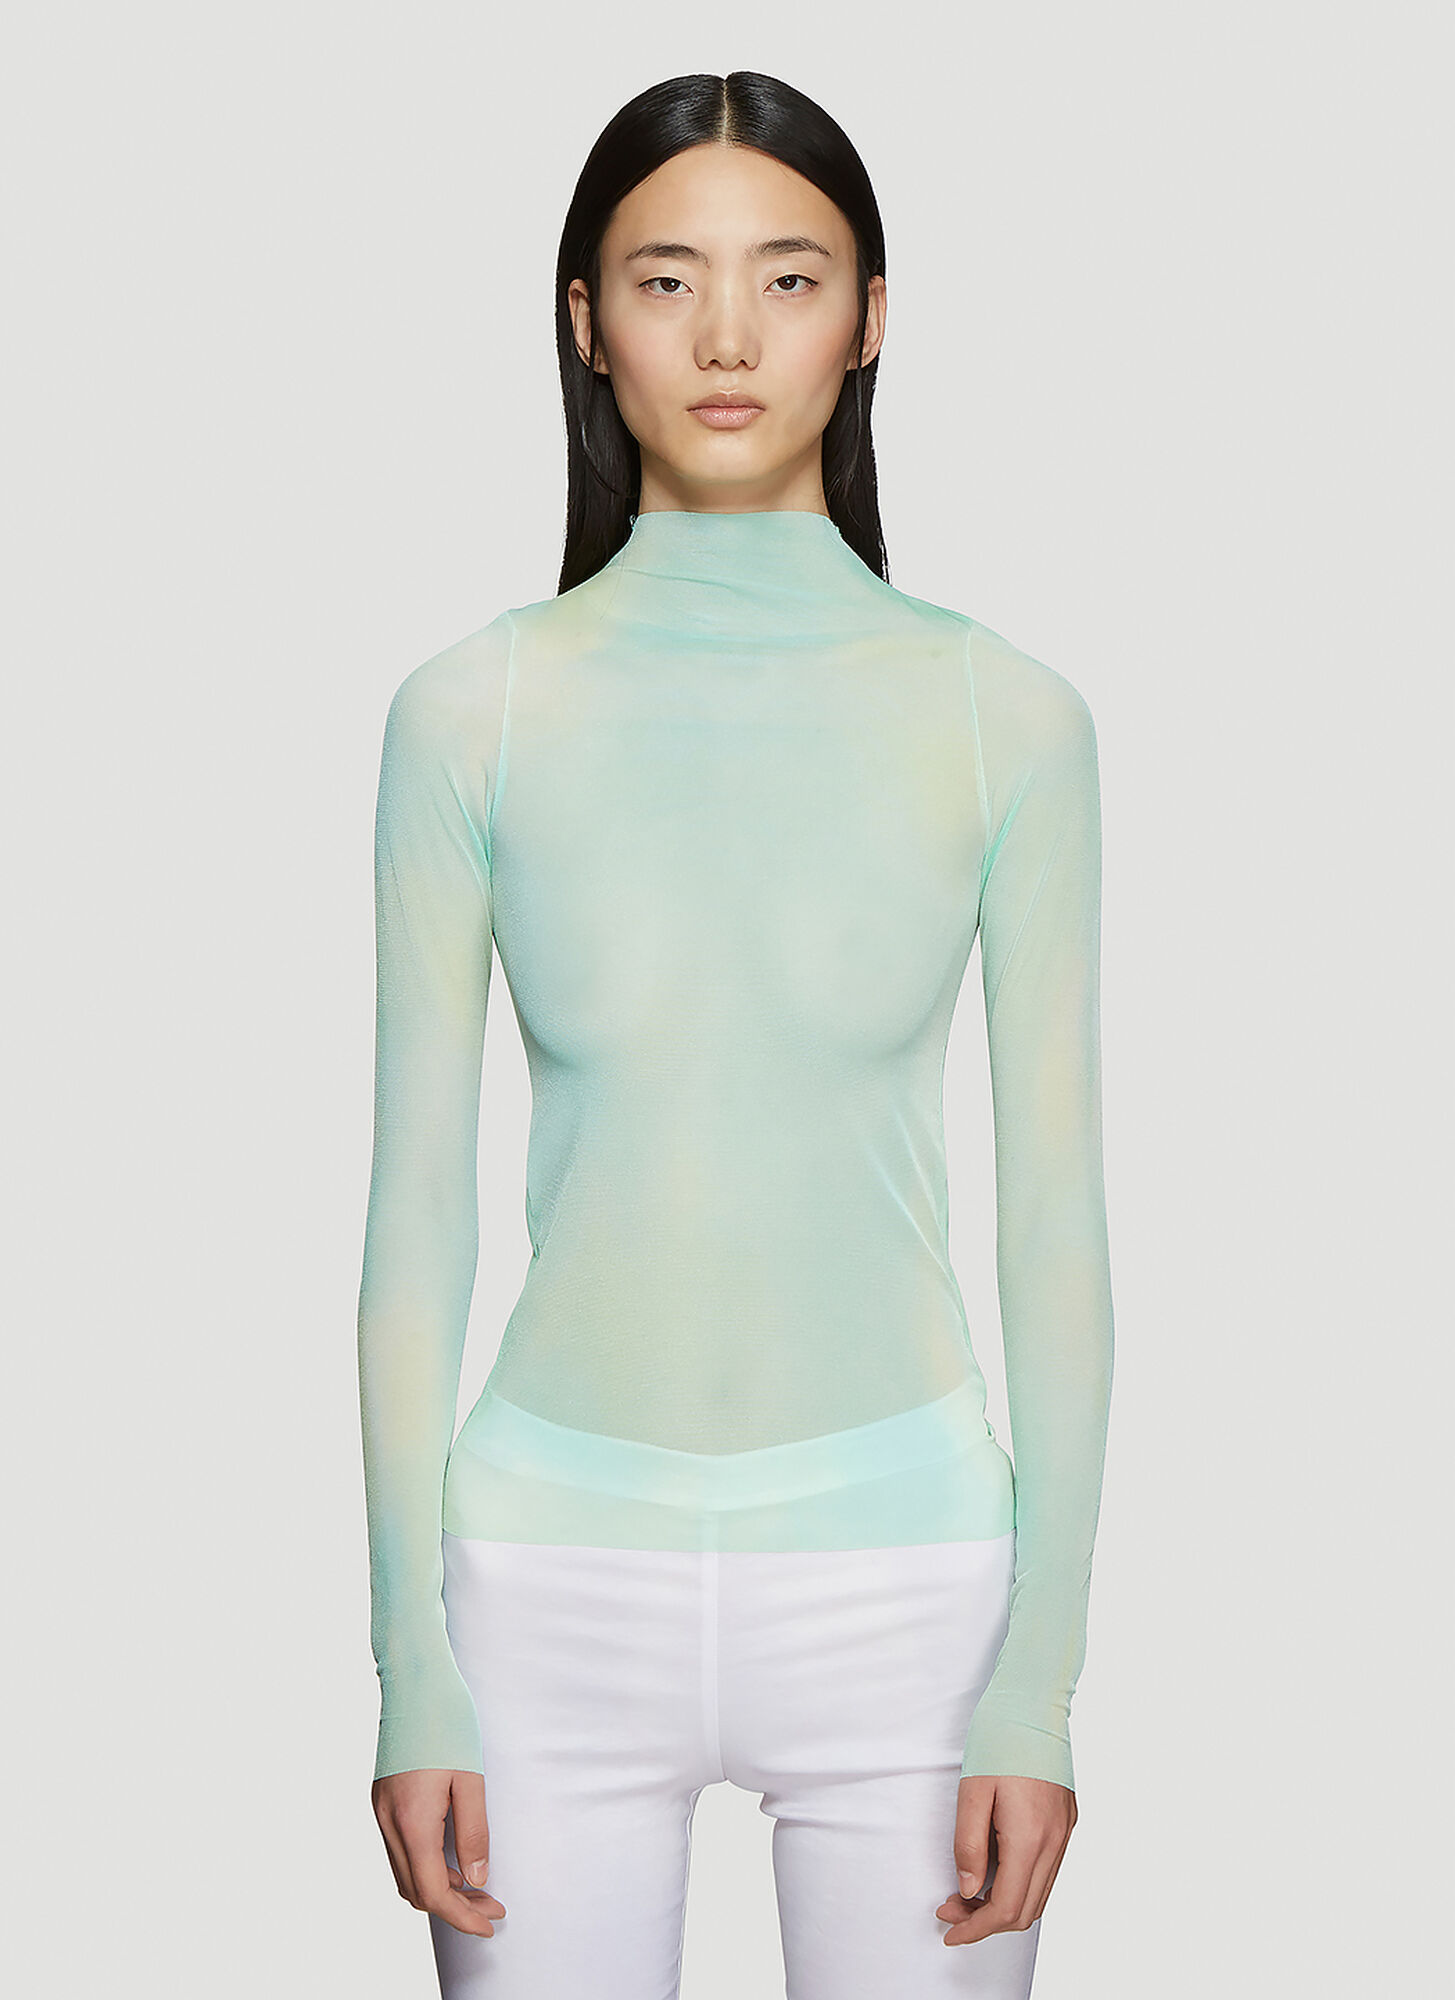 Collina Strada Cardio Nova Tie-Dye Long Sleeve Top in Green